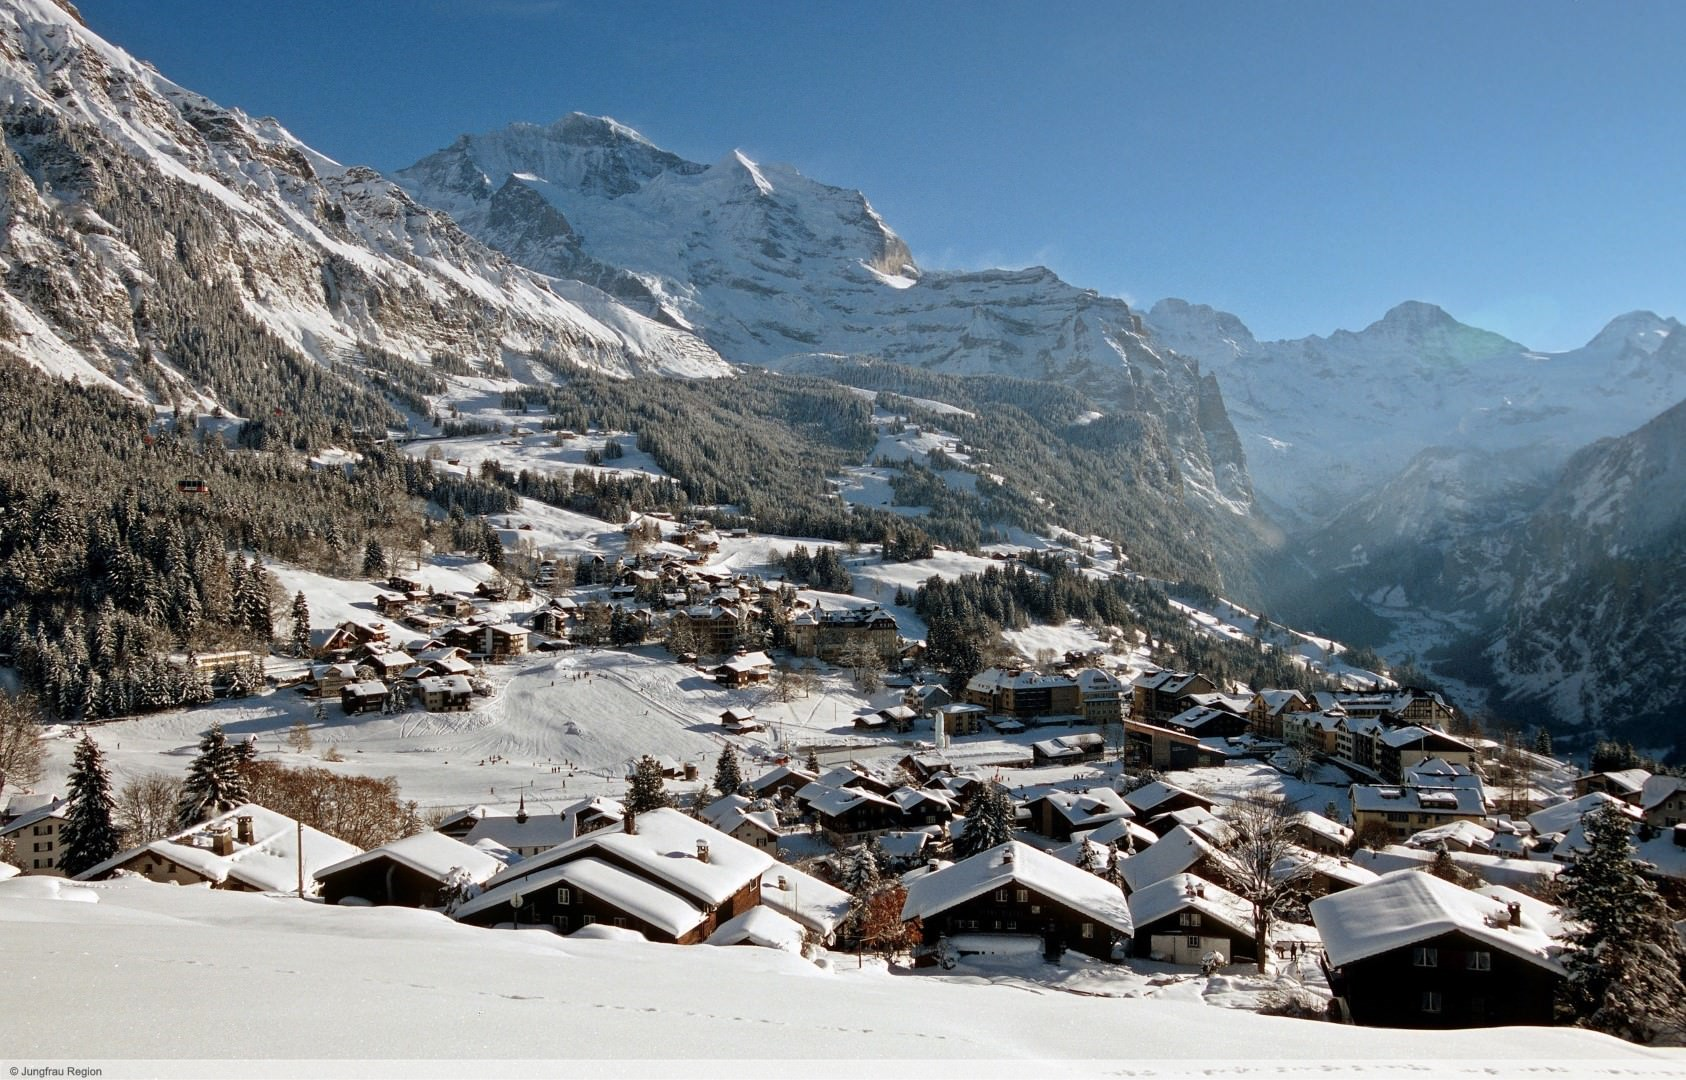 wintersport en aanbiedingen in Wengen